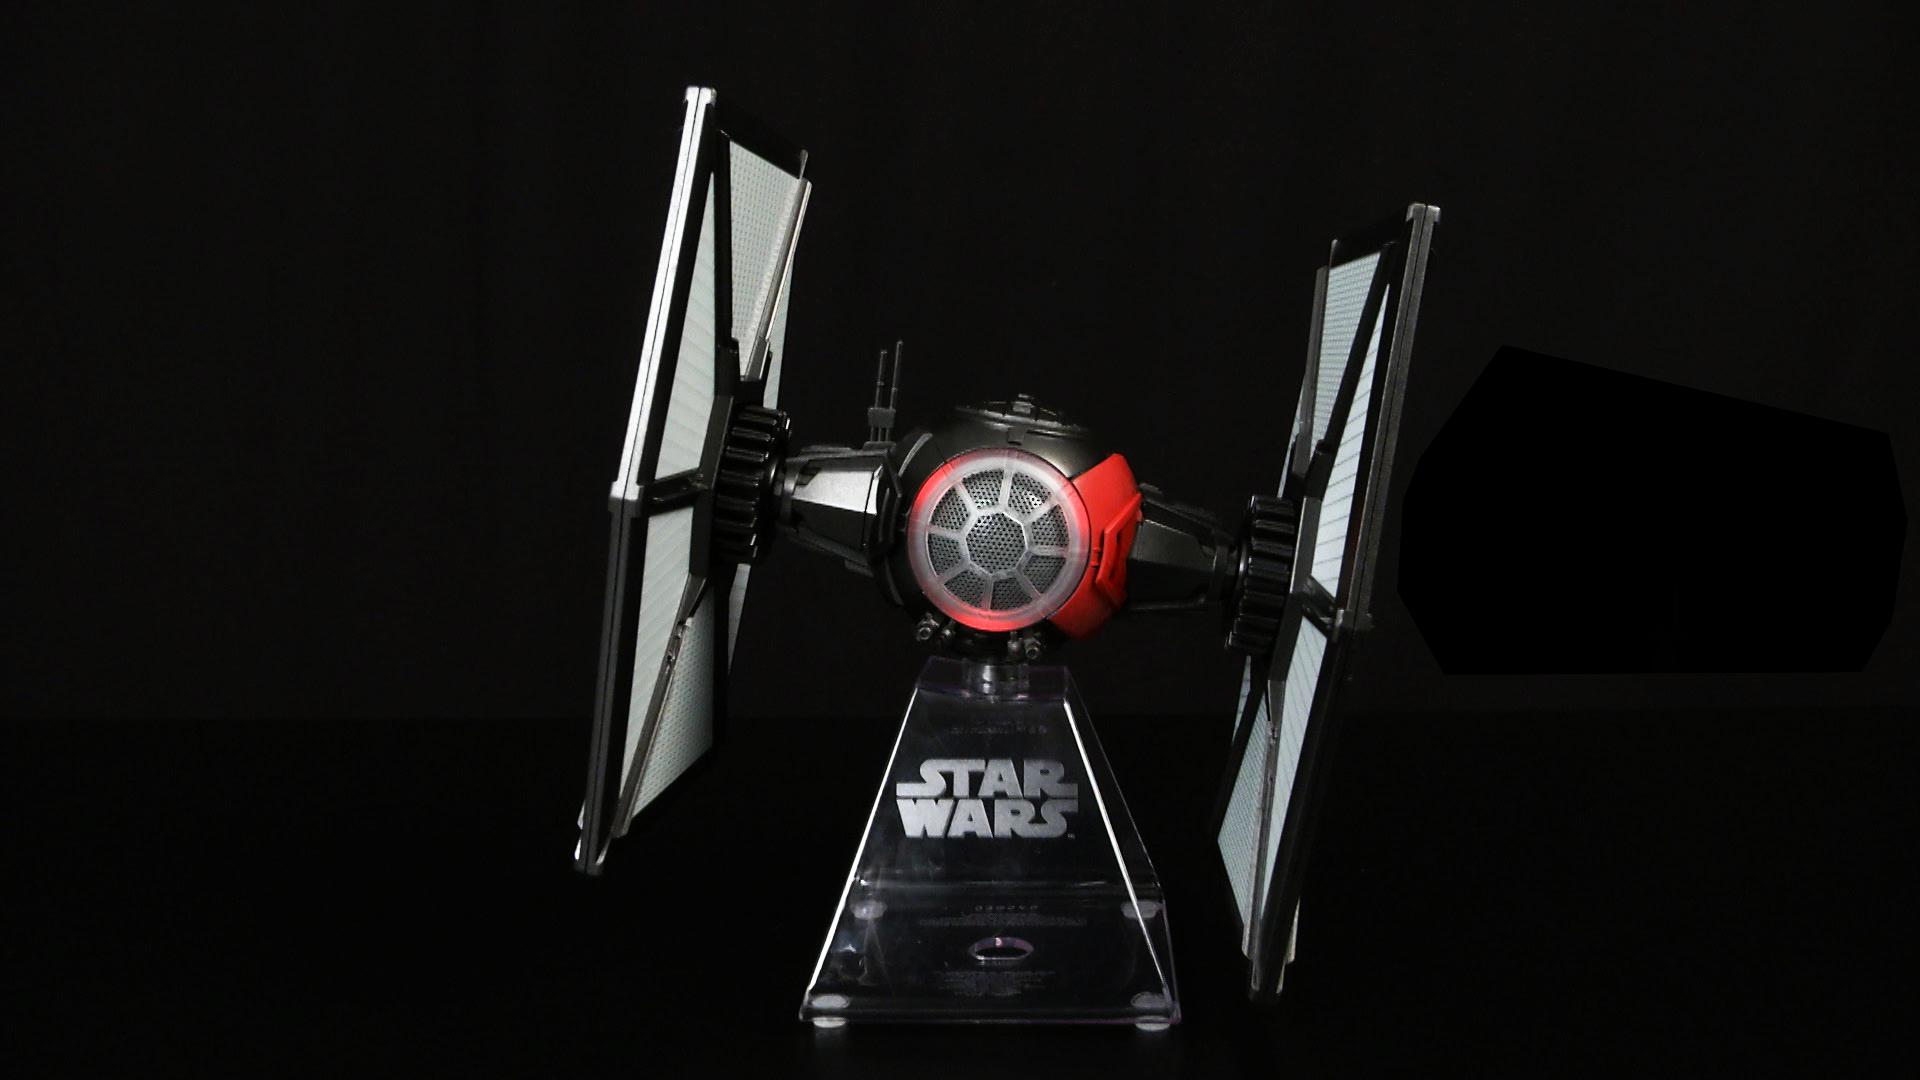 Star Wars Tie Fighter BT Speaker